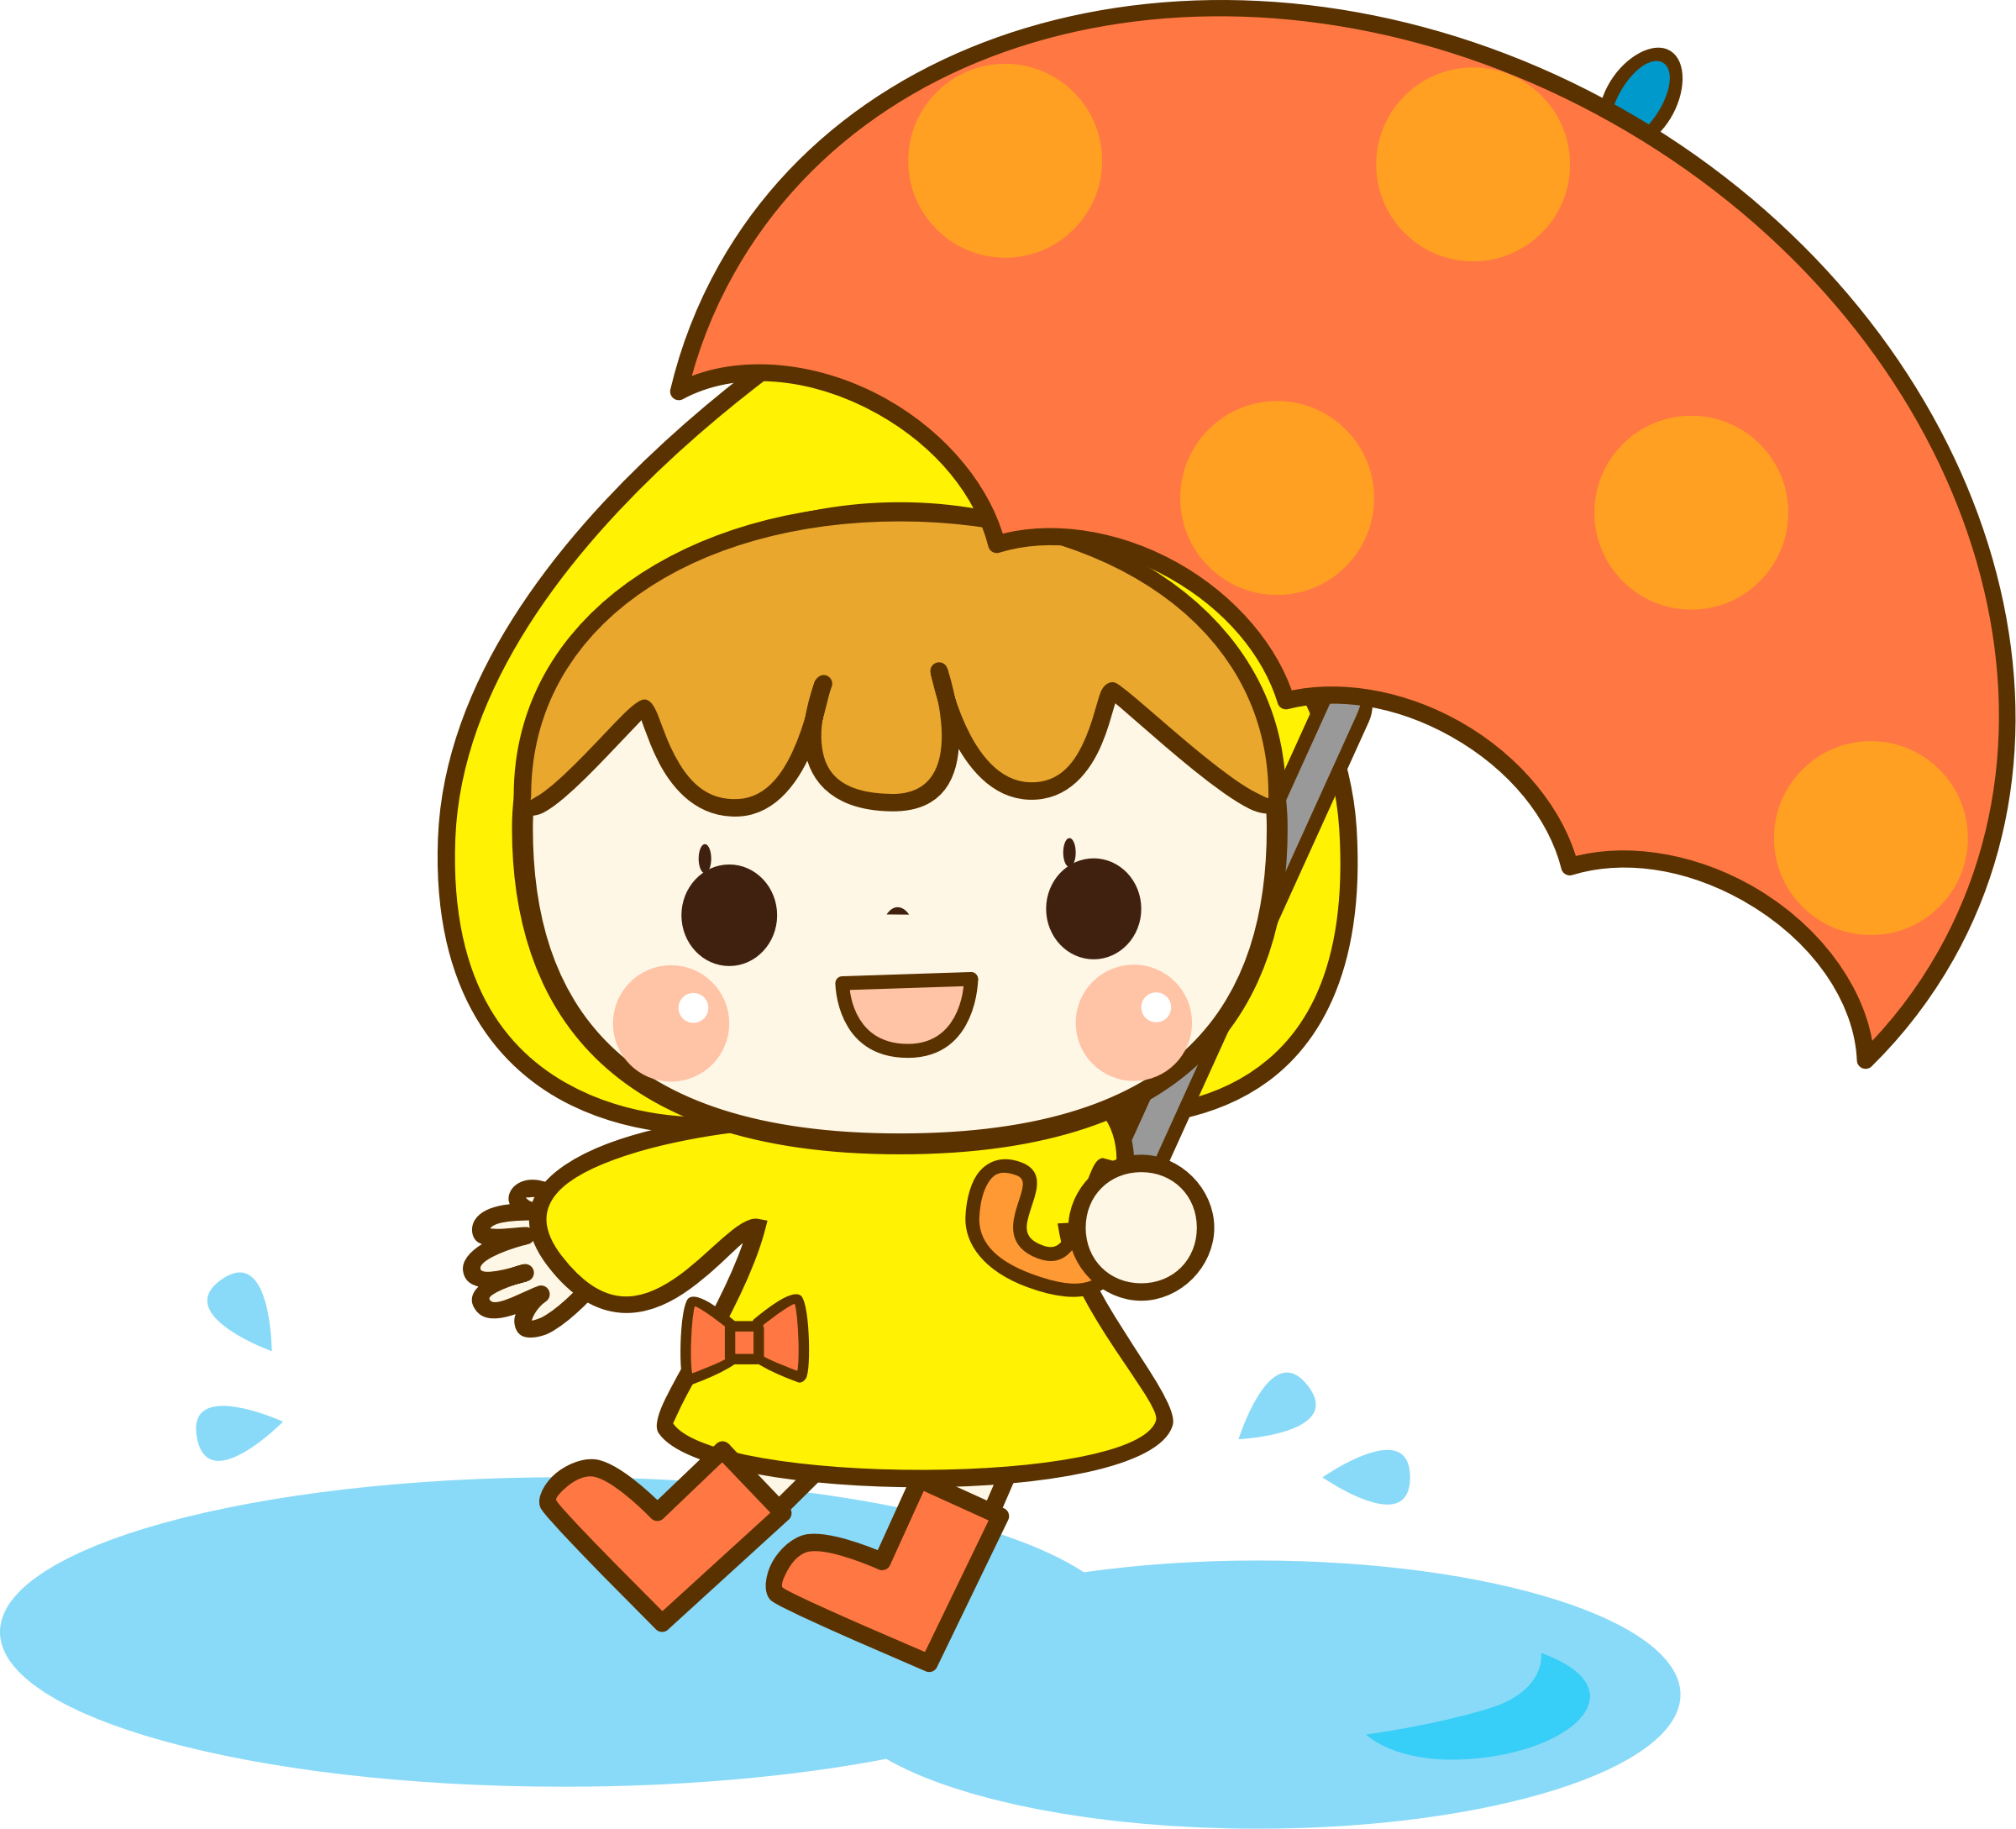 Clipart umbrella yellow umbrella. Girl with big image